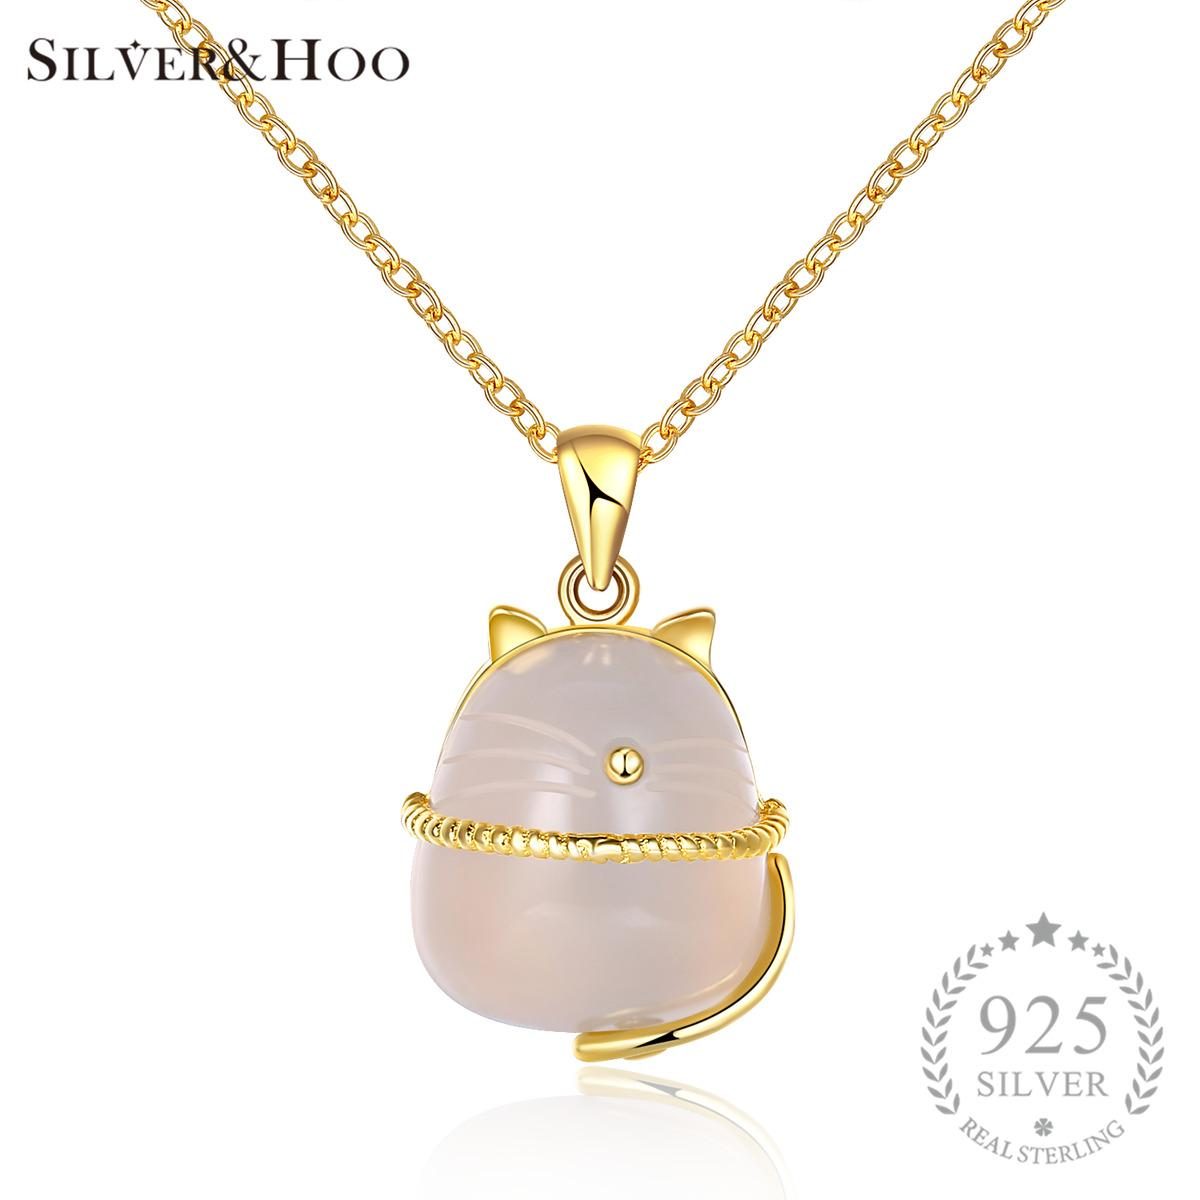 SILVERHOO Pendant Necklace Lovely Cat Moonstone 2017 New Design 925 Sterling Silver Gift for Child Women Fine Jewelry Y1892806